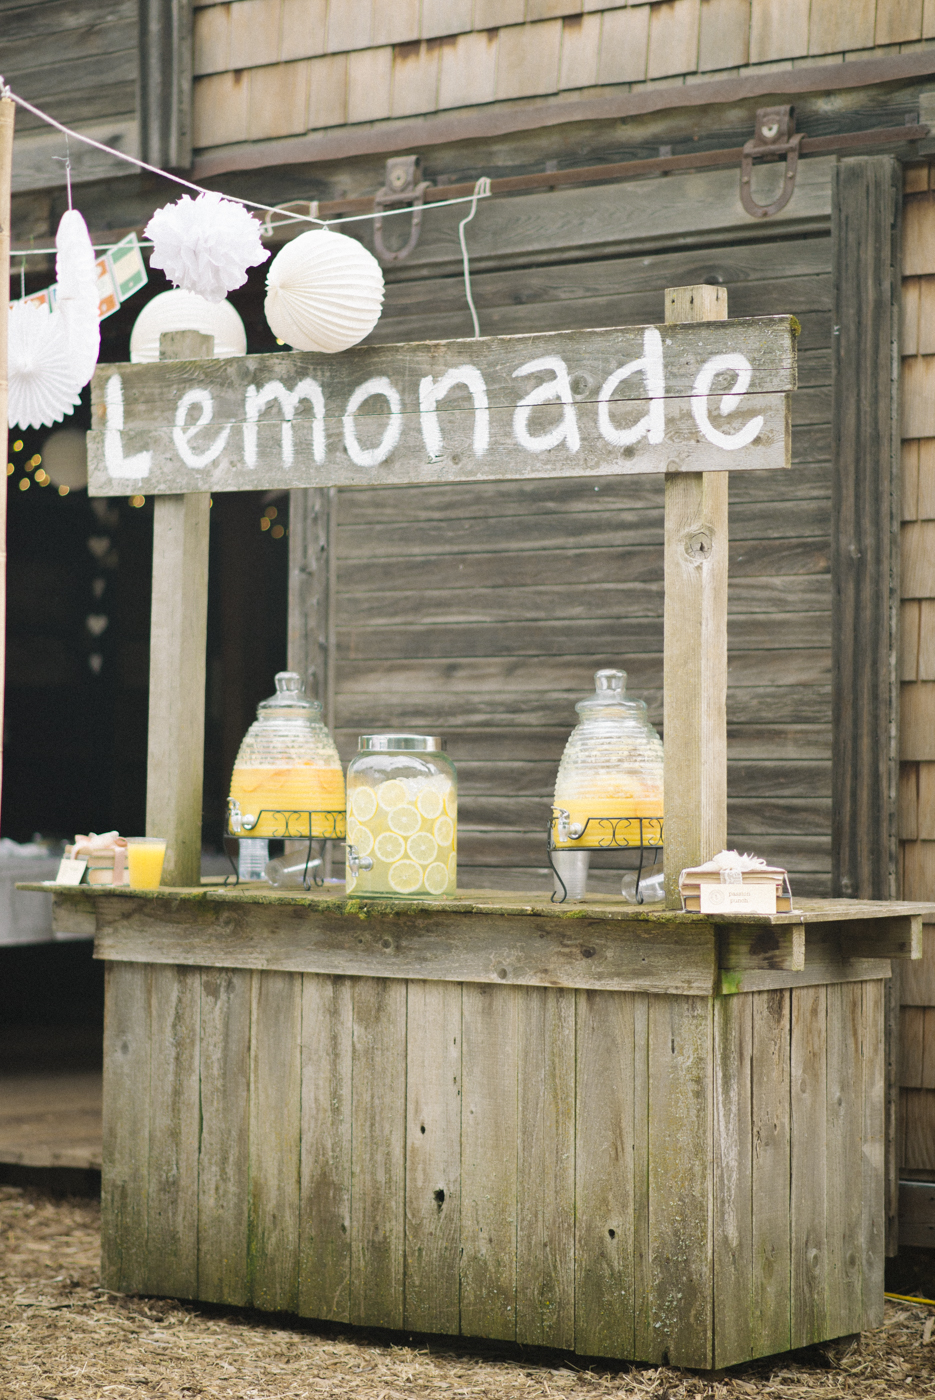 Dorris-Ranch-Wedding-Springfield-Oregon-Lemonad-Stand-Shelley-Marie-Photo-3